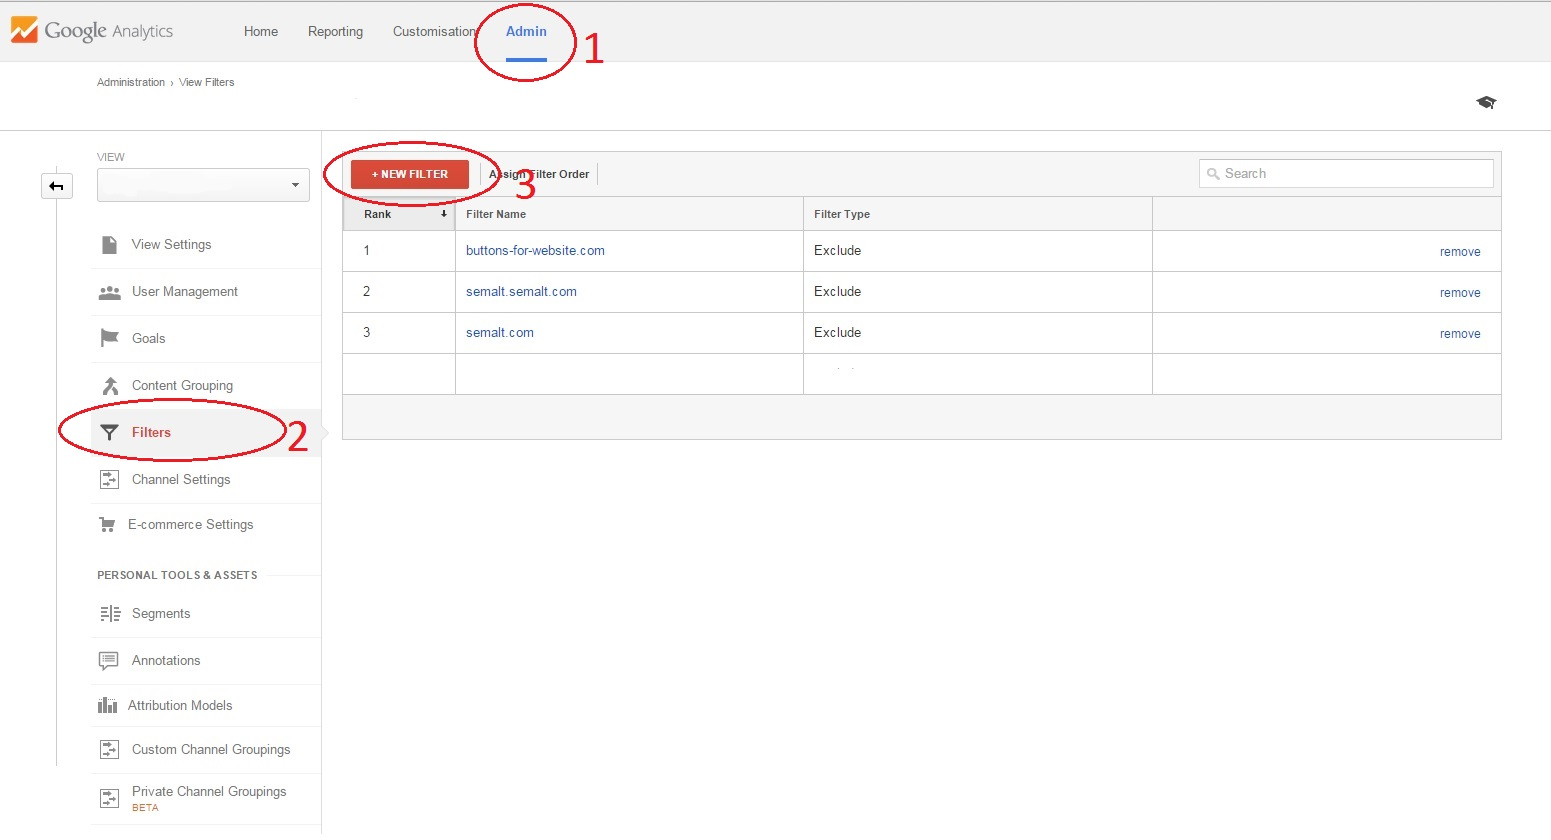 Adding filters on Google analytics